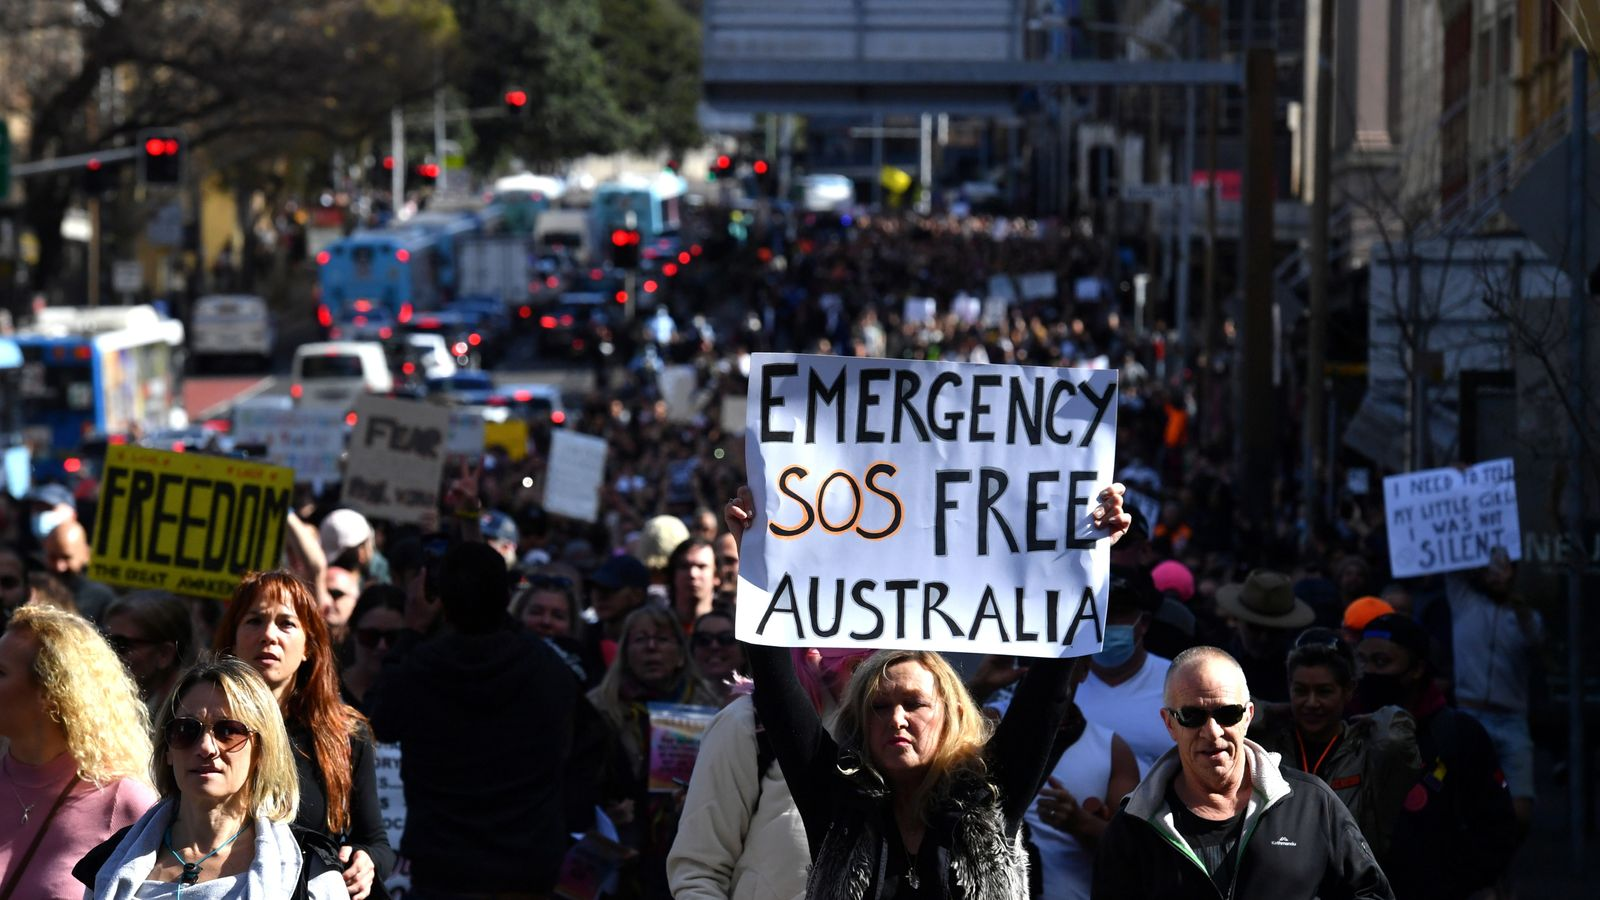 COVID-19: Thousands march in Sydney against latest lockdown restrictions amid surge in coronavirus cases